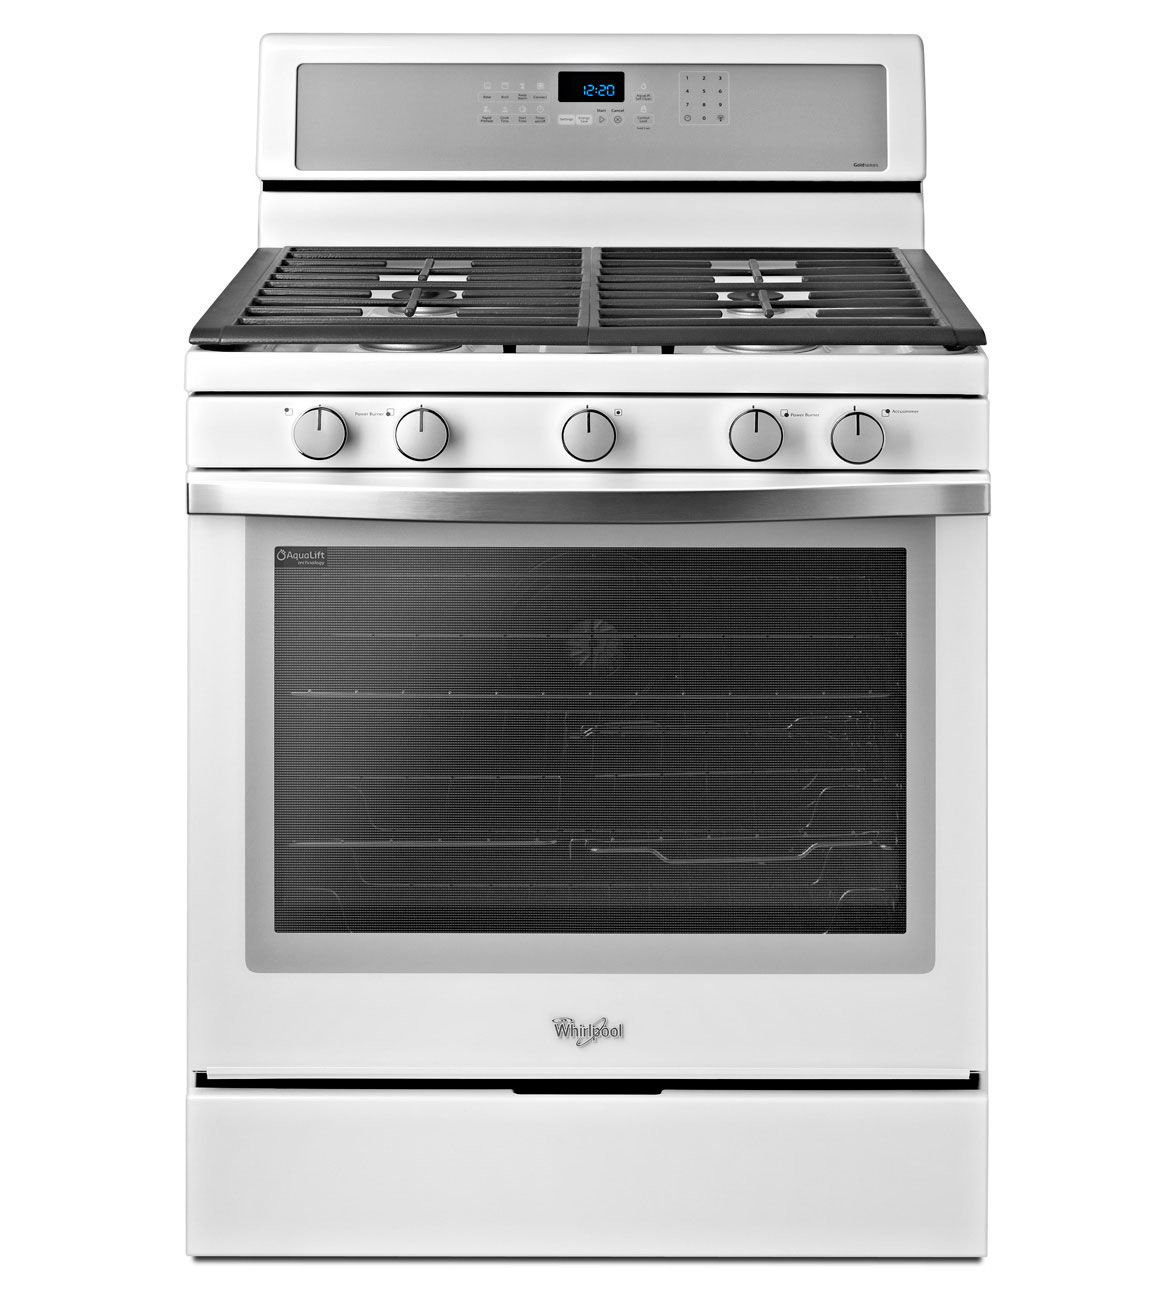 Whirlpool white ice single wall oven - Whirlpool Gold 5 8 Cu Ft Capacity Gas Range With Rapid Preheat Option In White